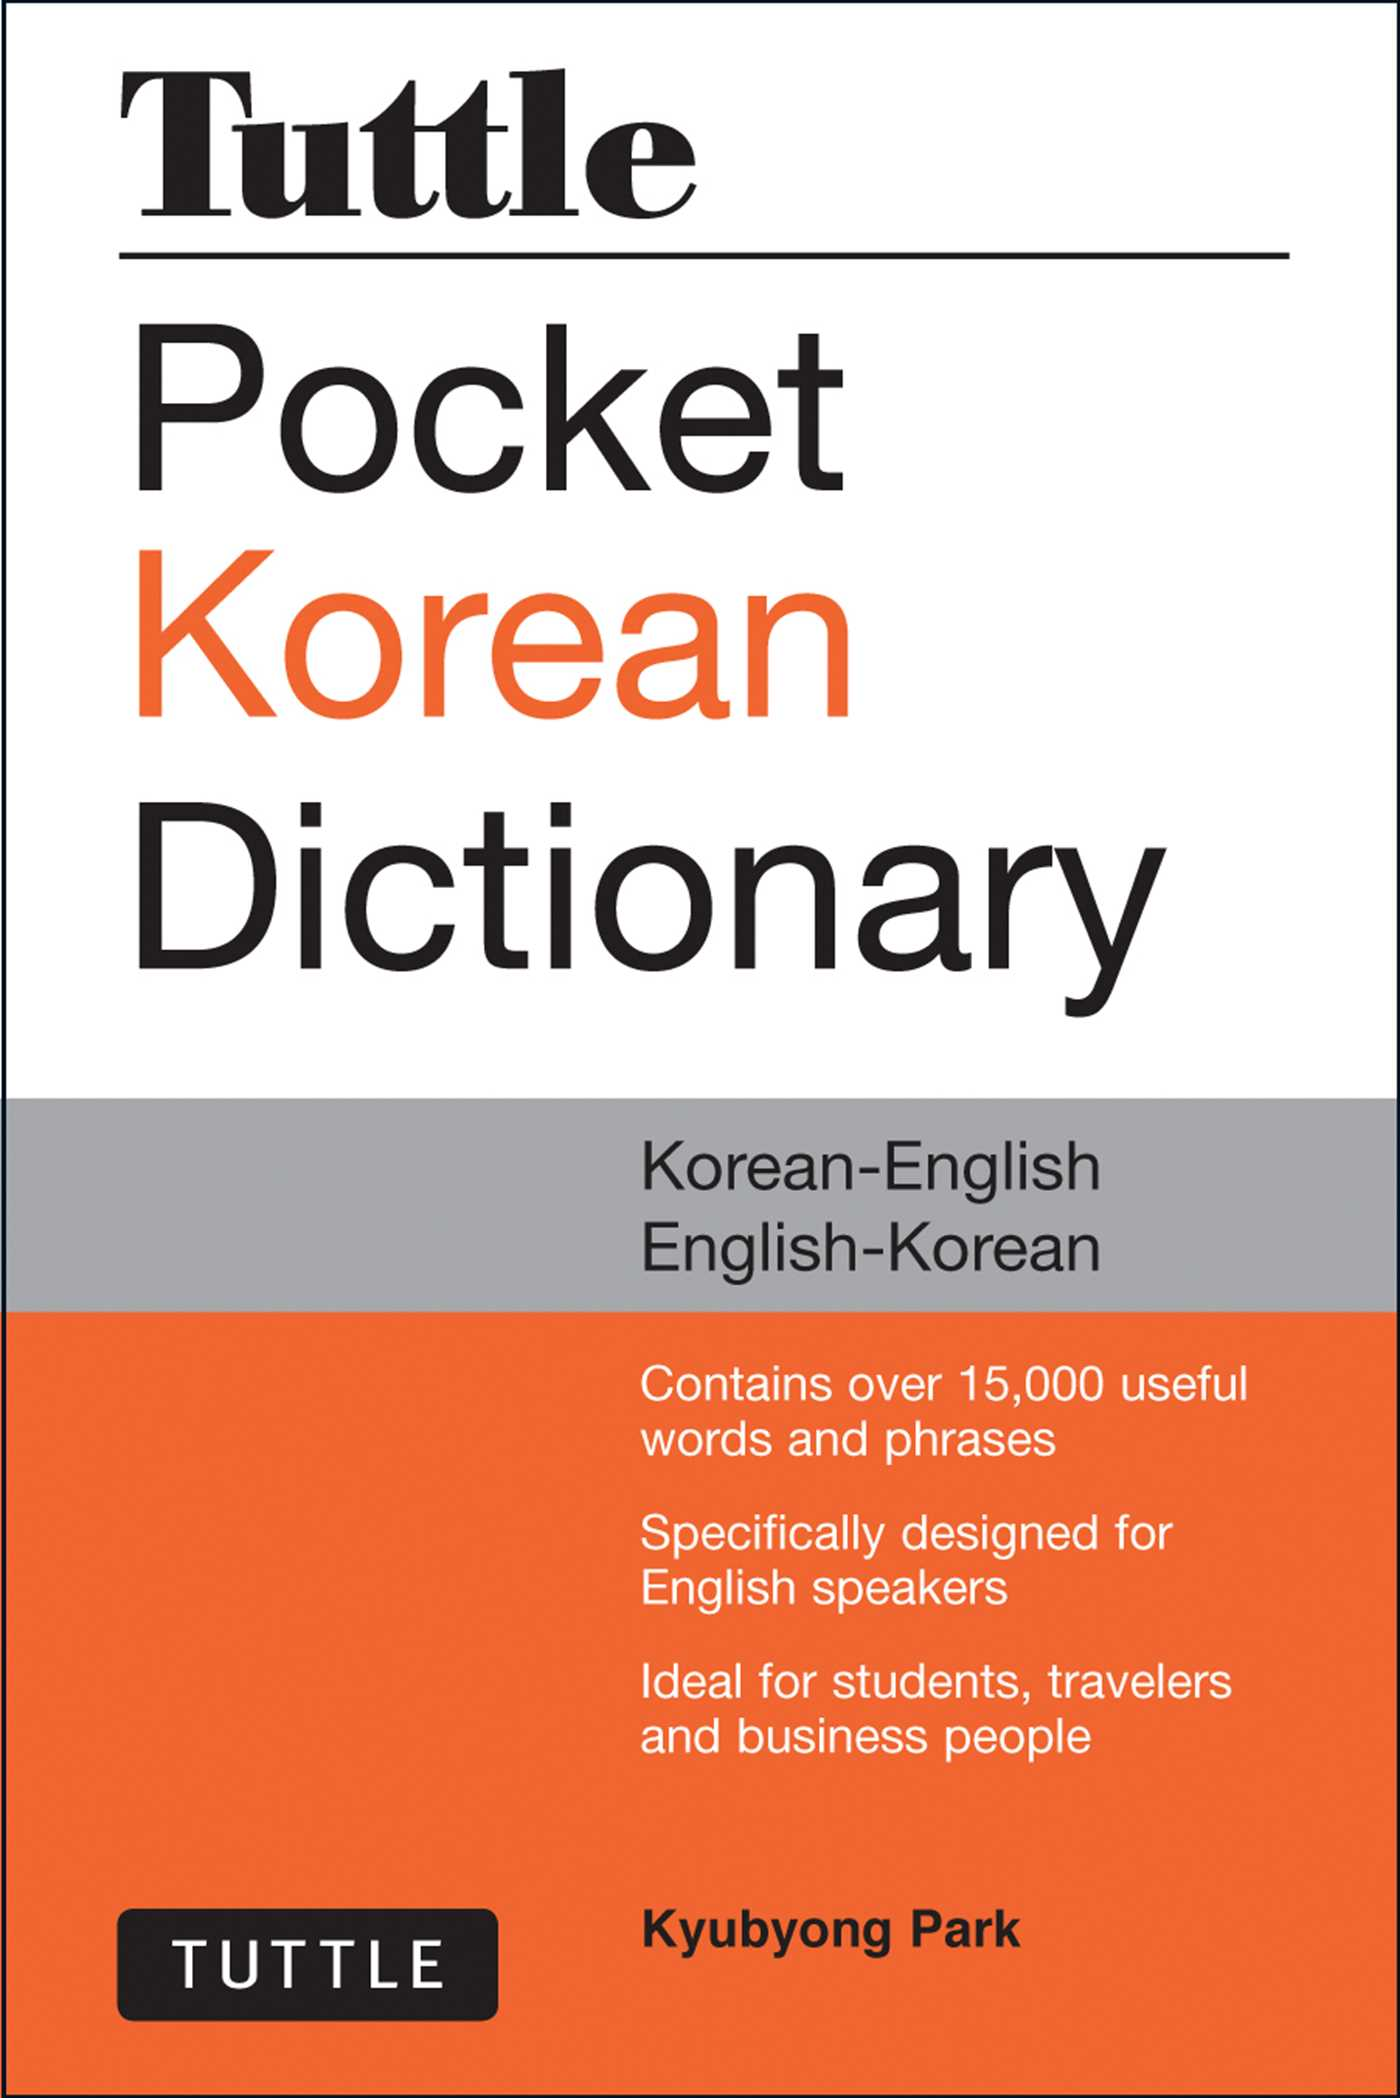 Tuttle pocket korean dictionary 9780804842662 hr